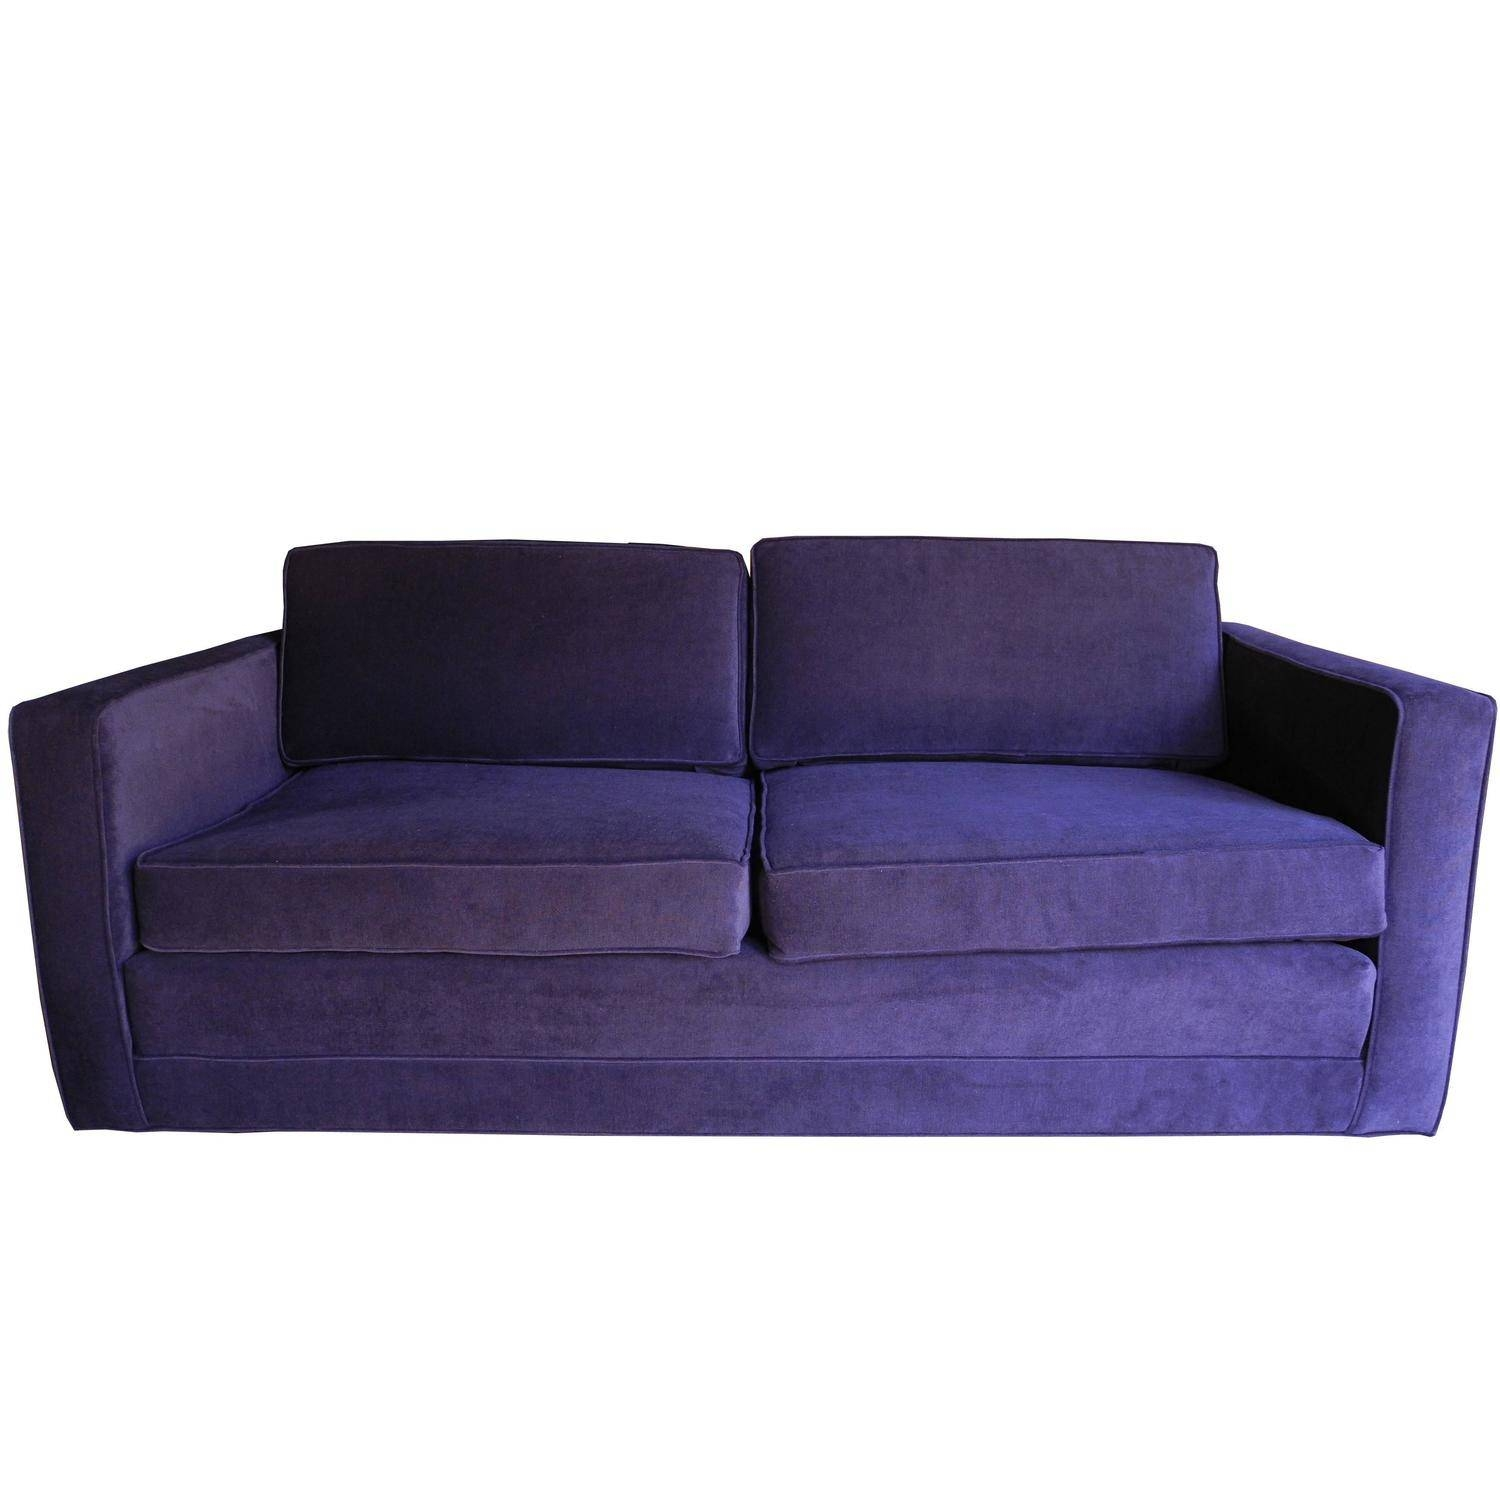 Mid-Century Modern Purple Velvet Sofa / Setteecharles Pfister with regard to Velvet Purple Sofas (Image 15 of 30)